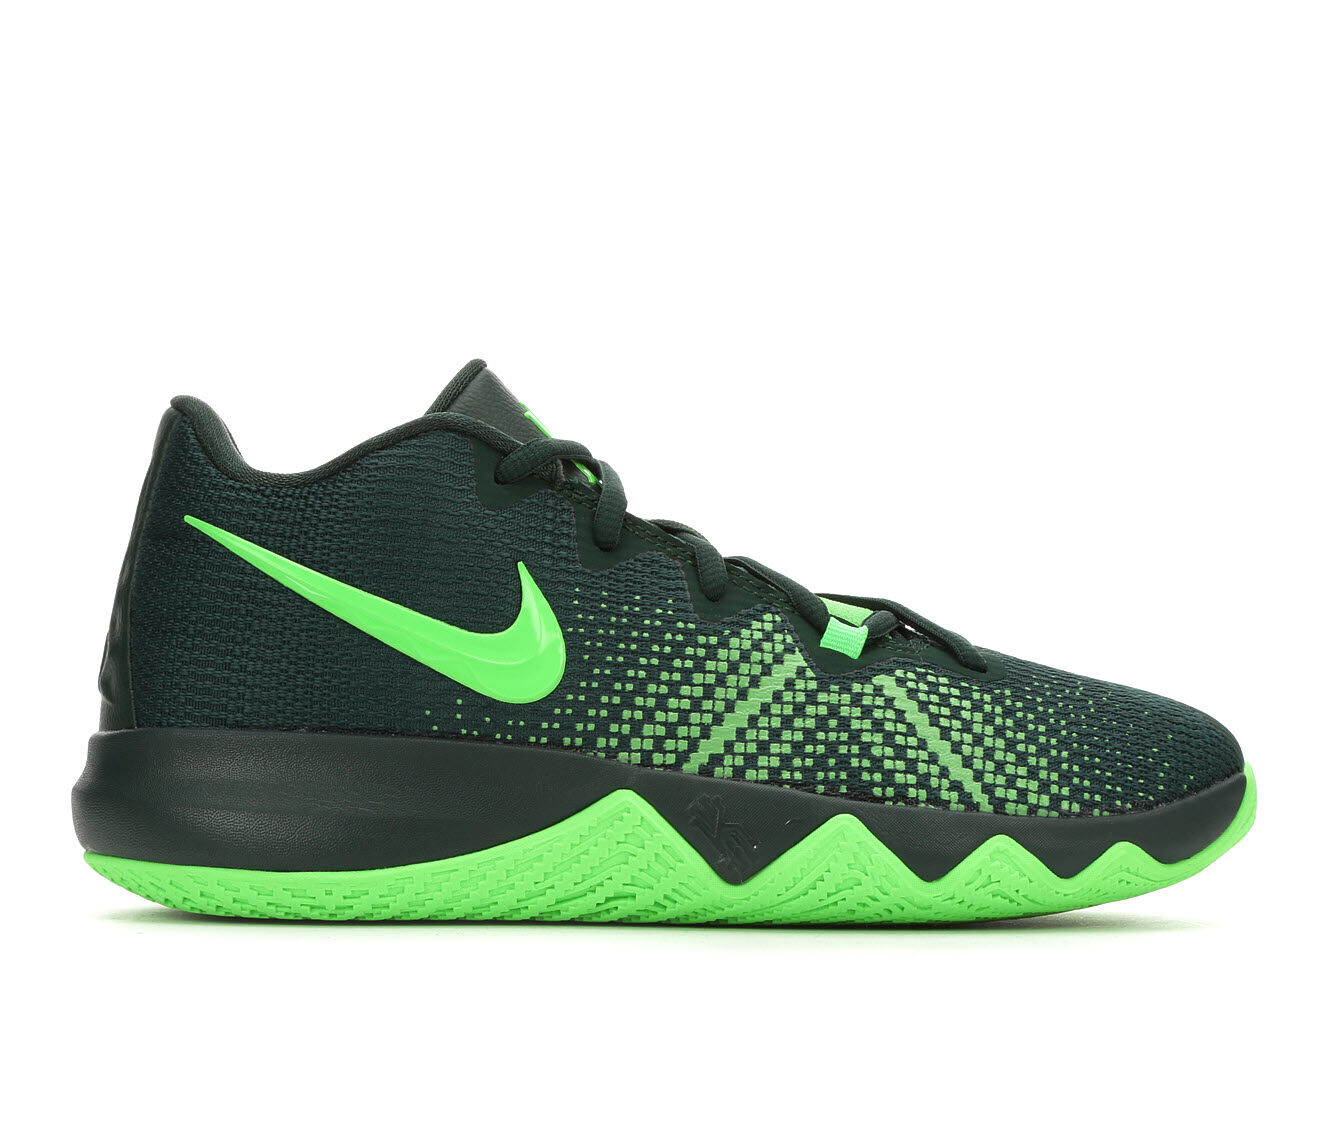 6e8c5799e93 Boys\u0027 Nike Big Kid Kyrie Flytrap High Top Basketball Shoes | Shoe .